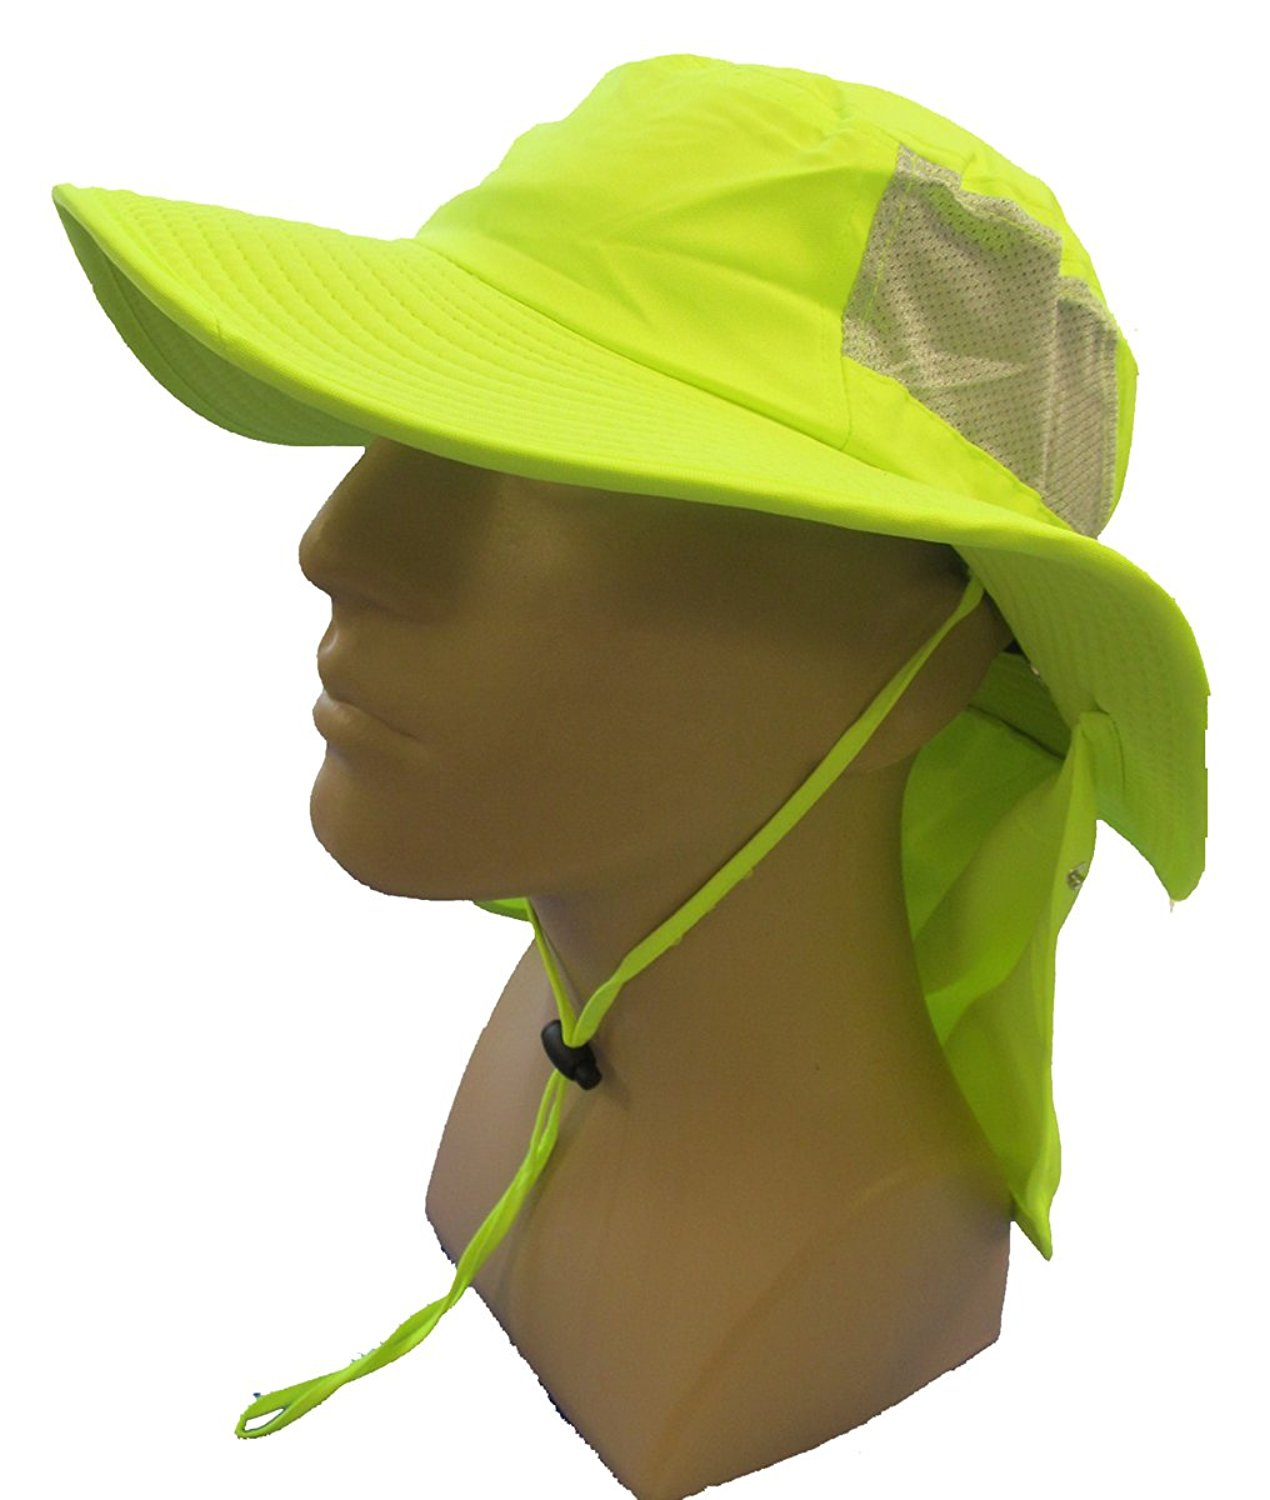 a19474d6cec5b Get Quotations · Tuff   Dry Wicking   Cooling Hi Viz Yellow Ranger Hat With  Neck Shade - TD500